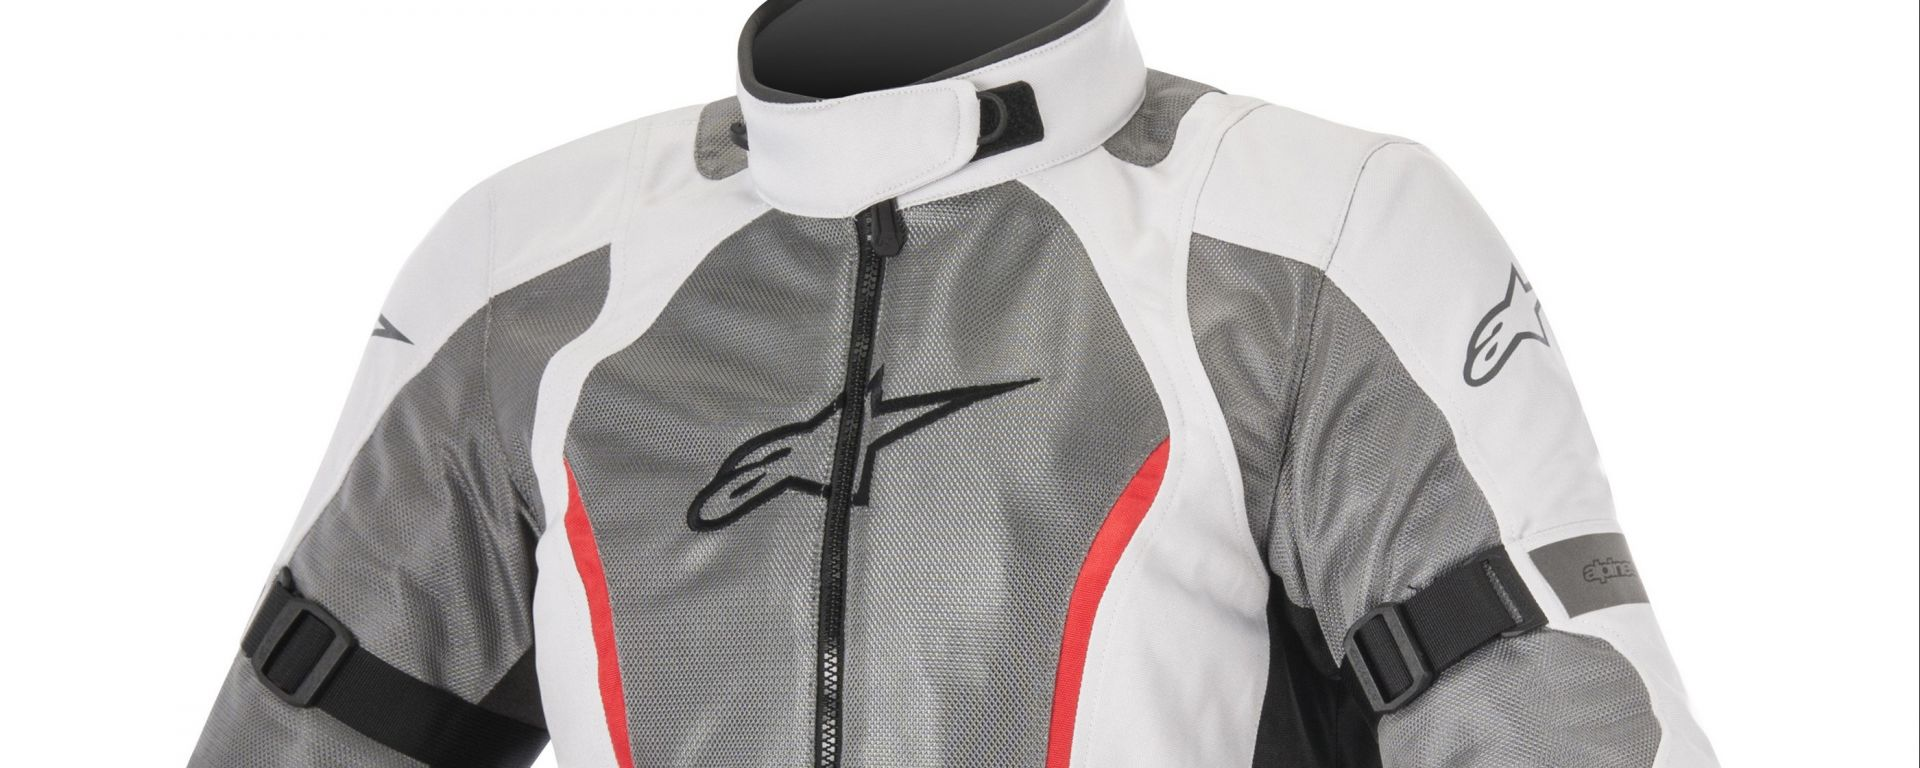 Alpinestars Spring Collection 2016